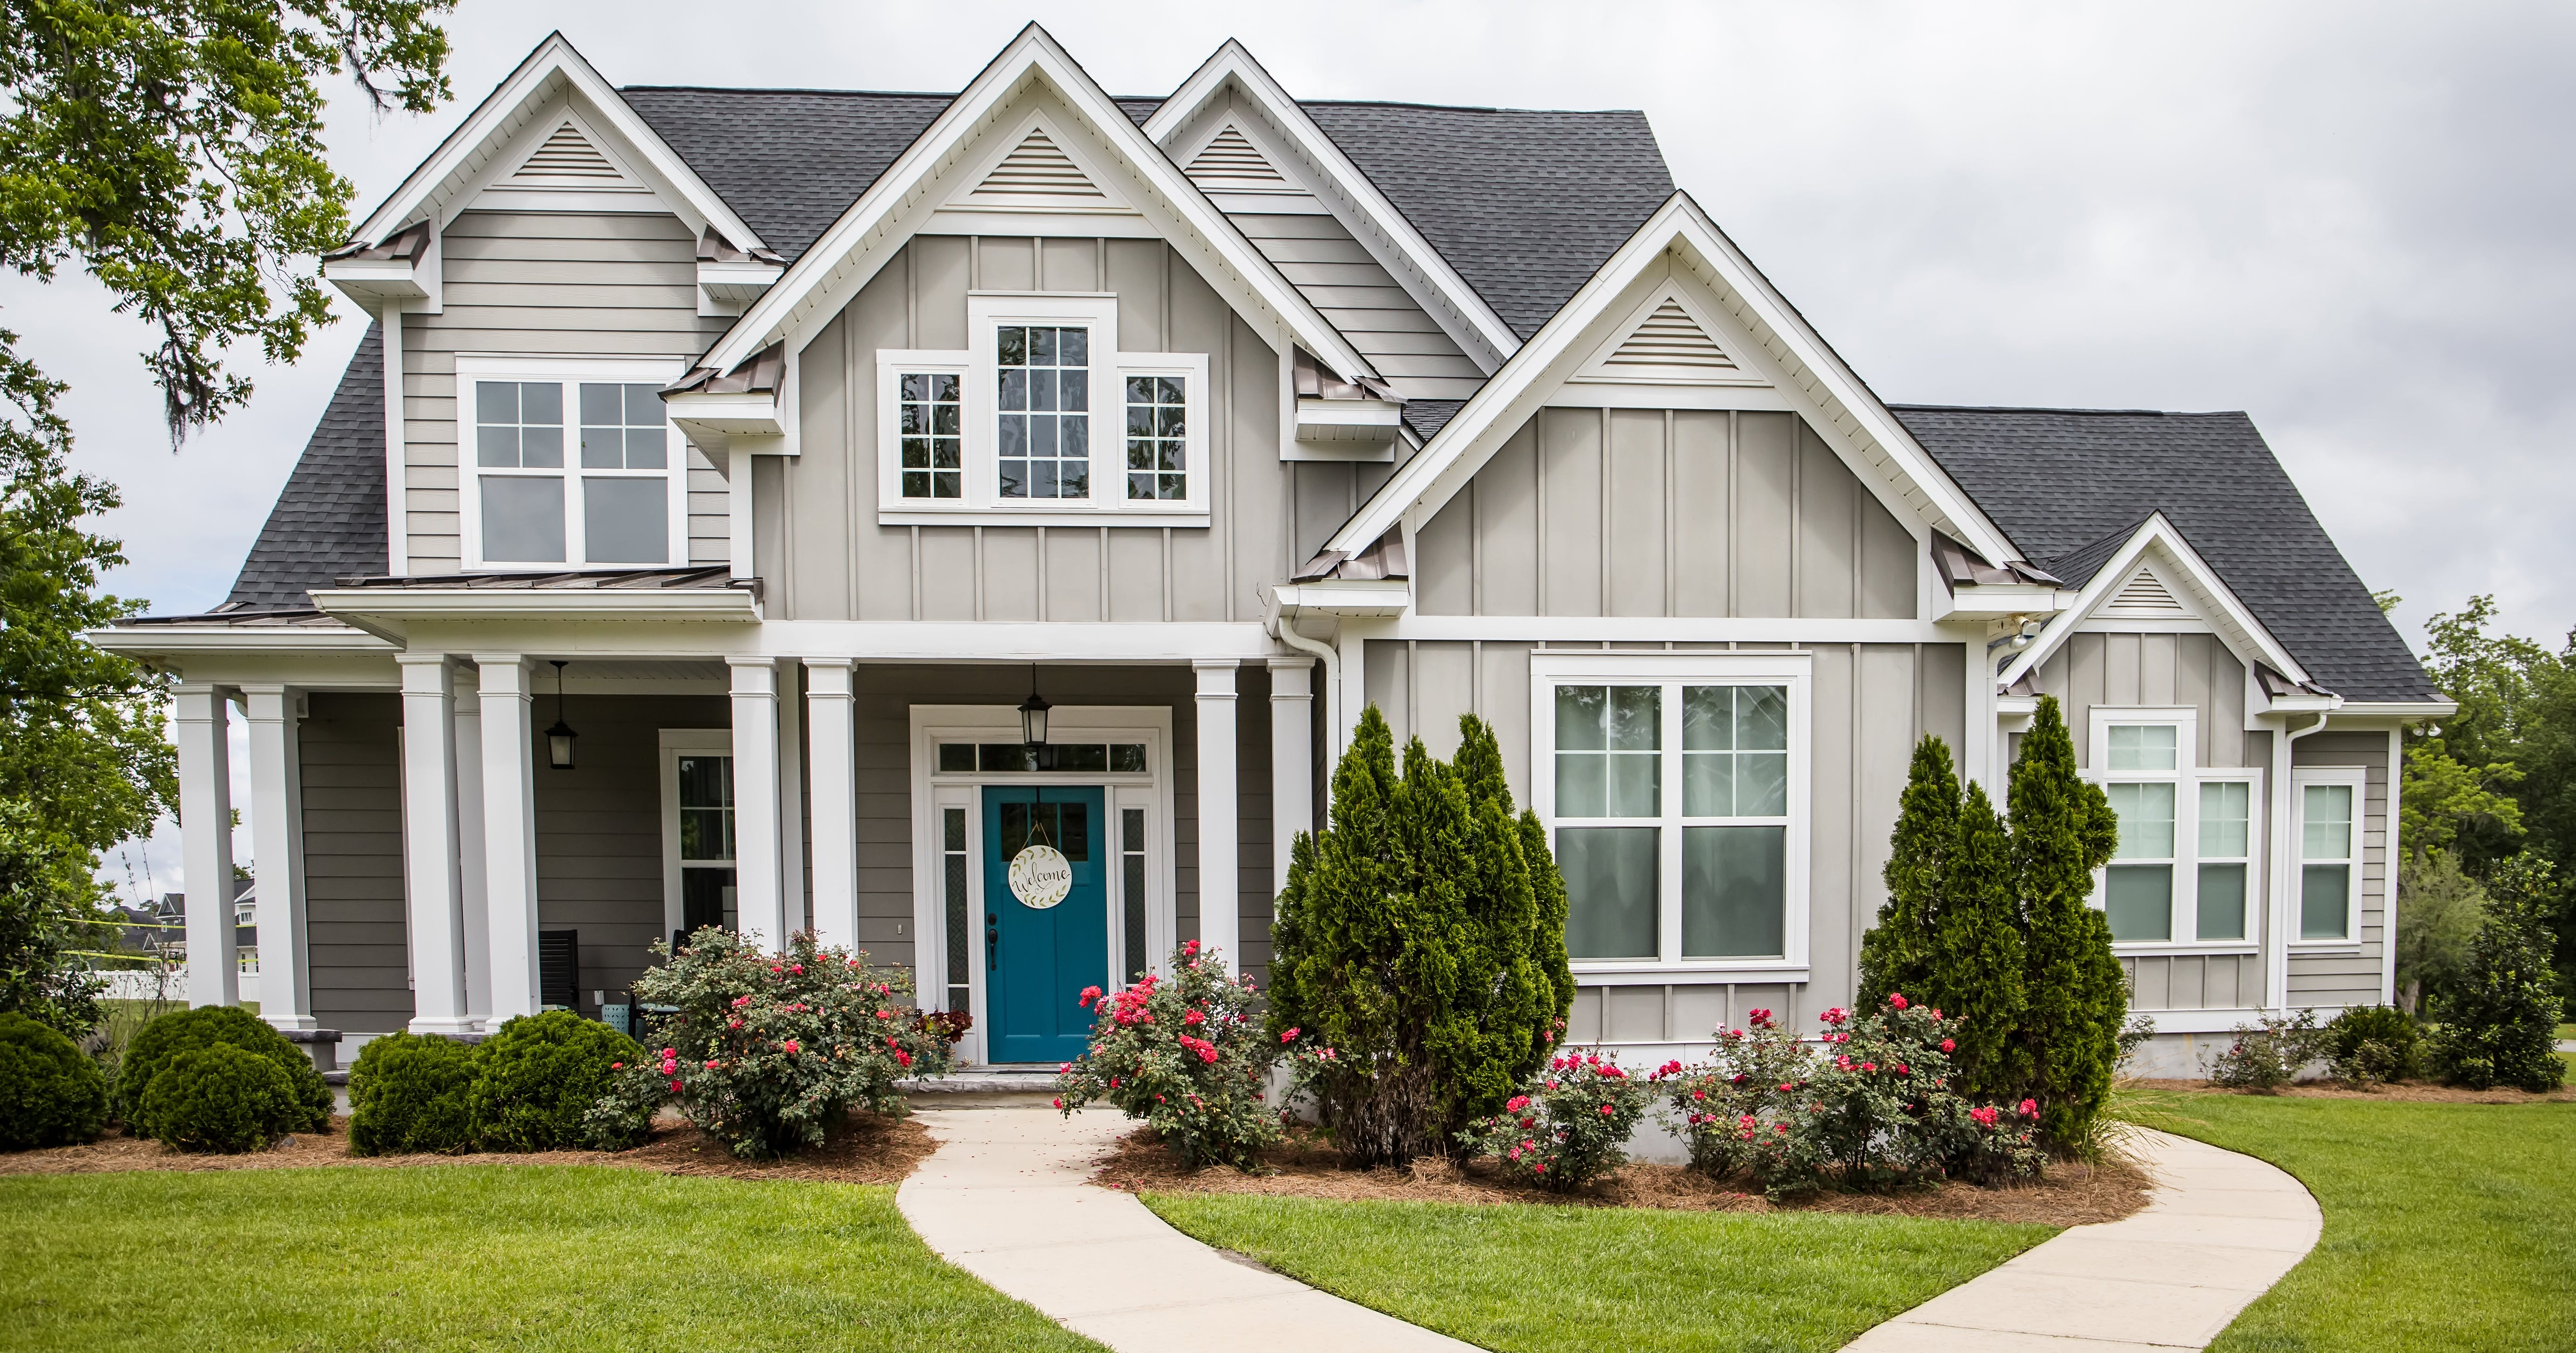 9 Inexpensive Ways to Boost Your Home's Curb Appeal (and 3 that Can Accidentally Destroy It)